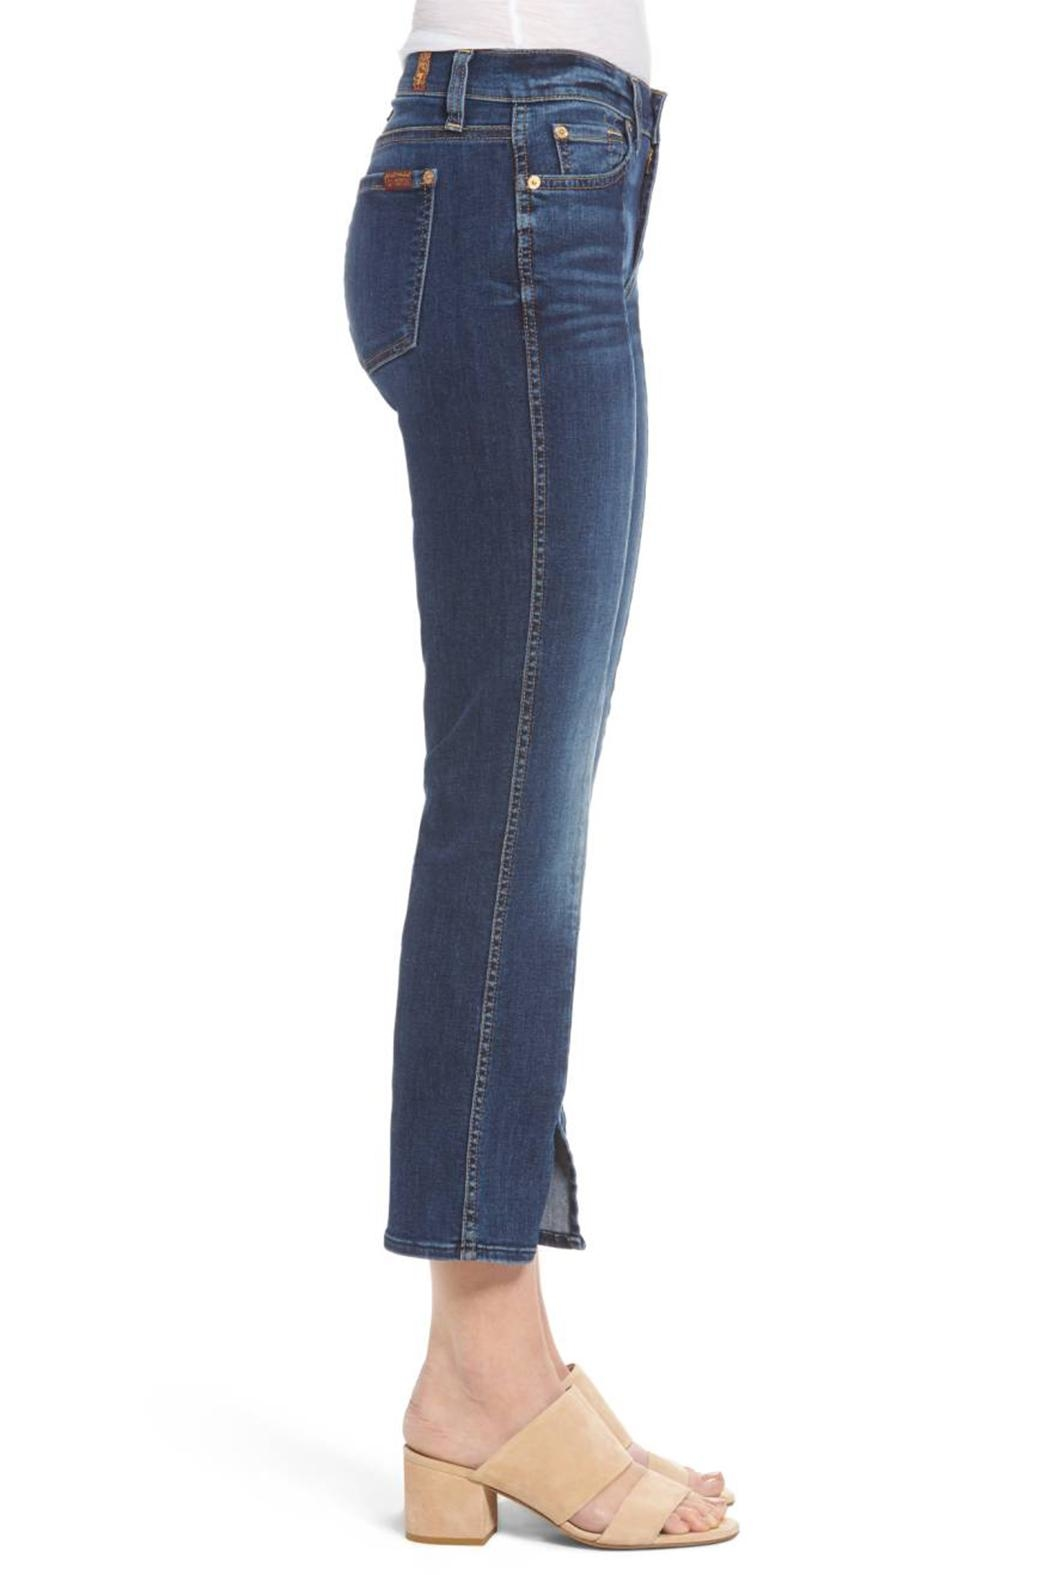 7 For all Mankind Cropped Boot Flare - Side Cropped Image